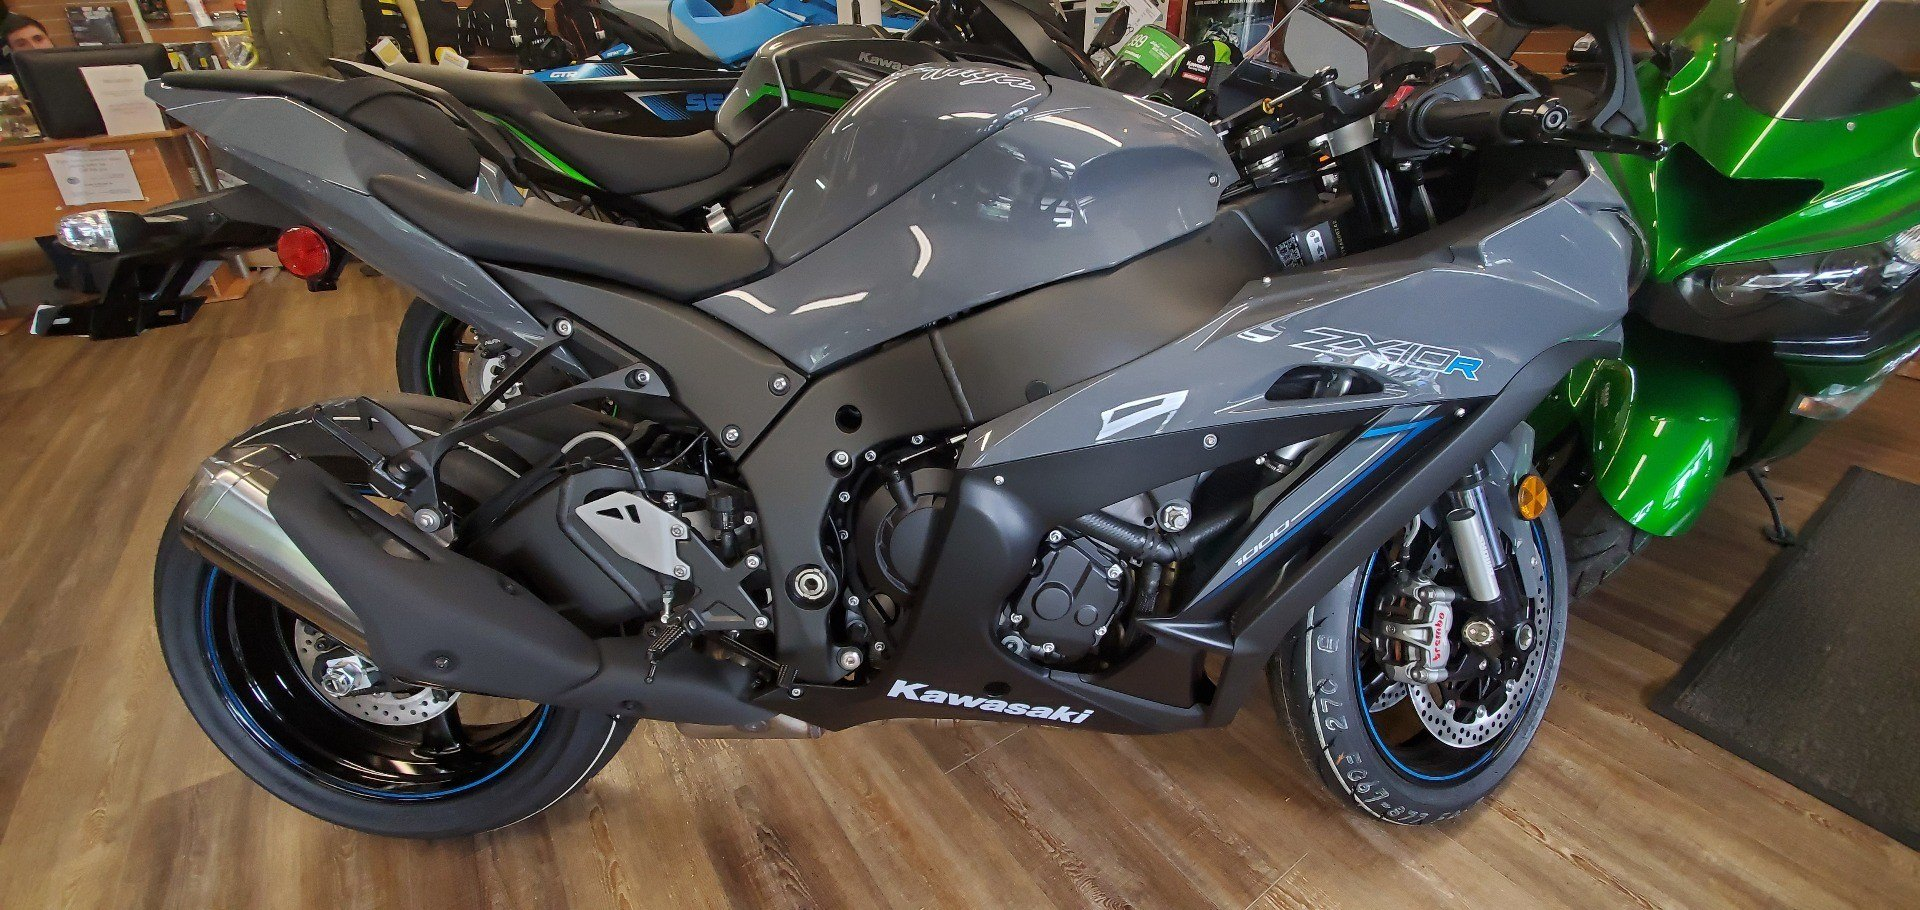 New 2019 Kawasaki Ninja Zx 10r Motorcycles In Ledgewood Nj